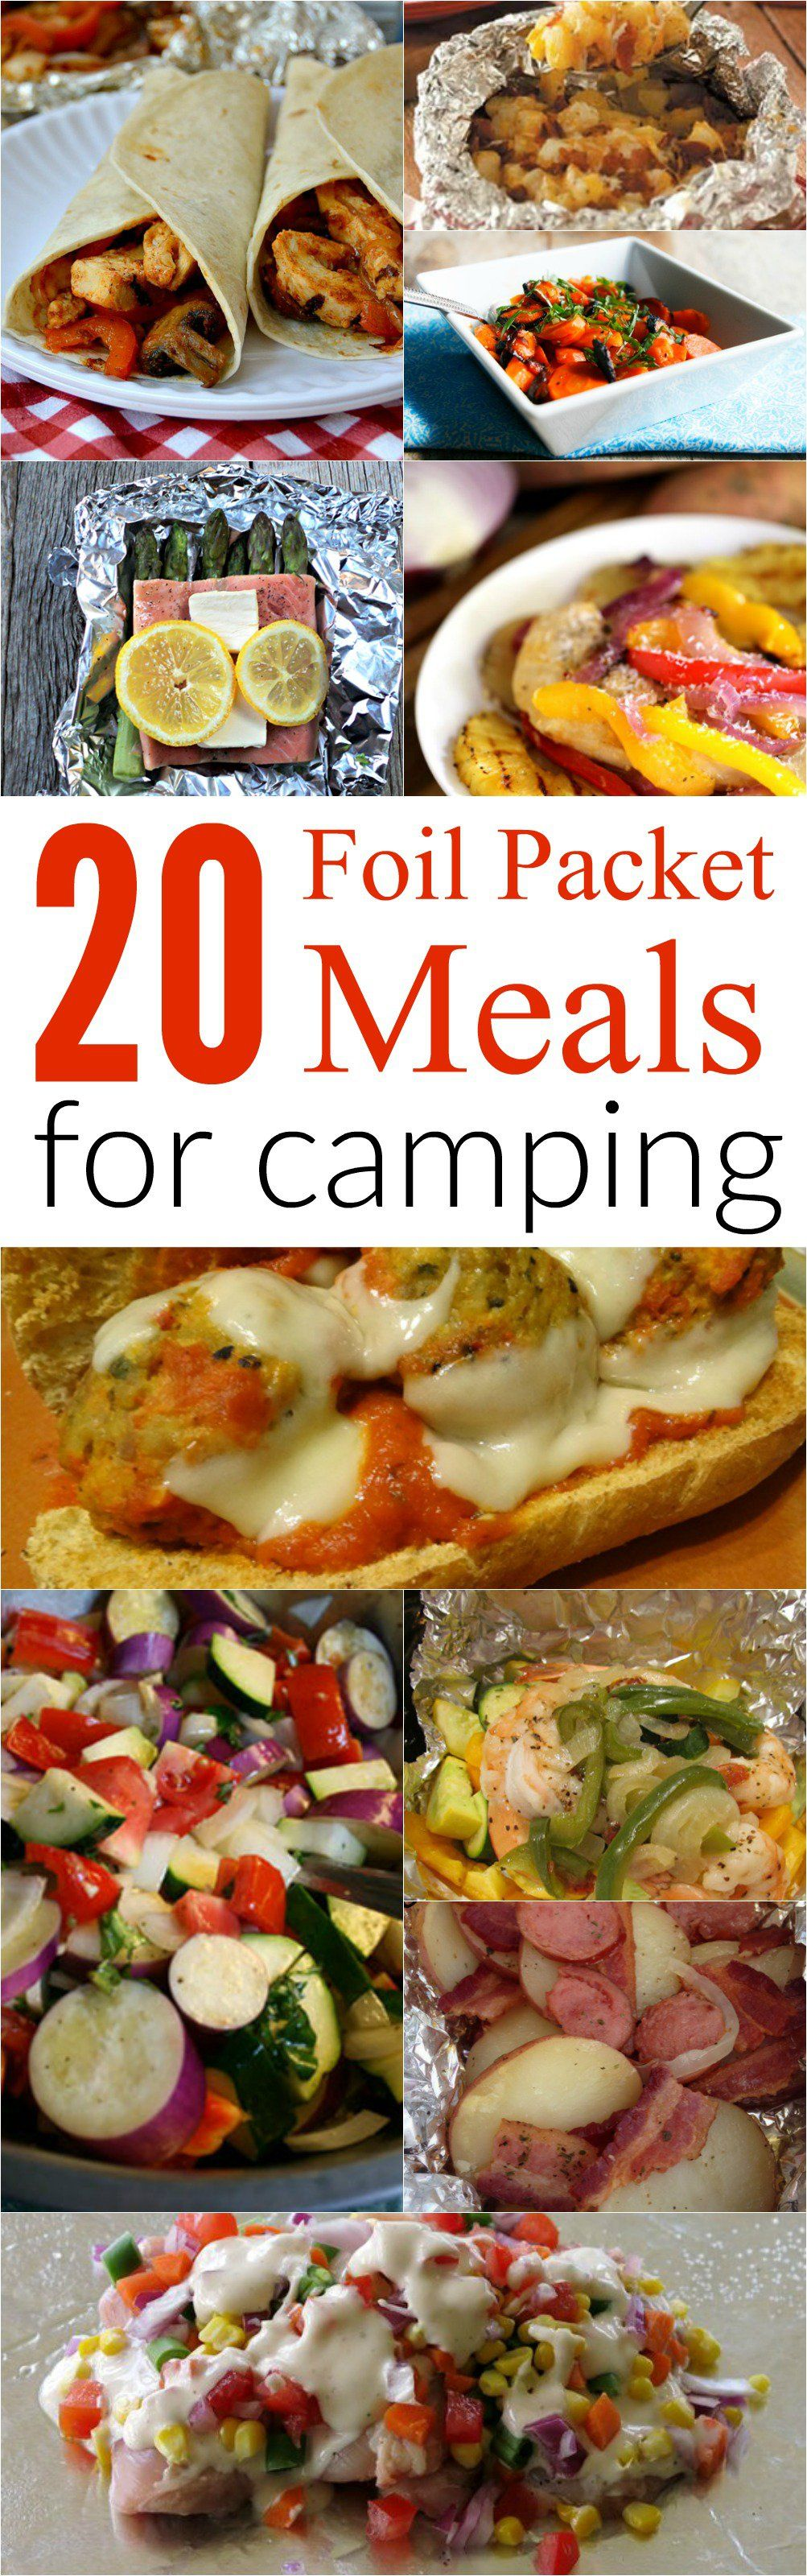 Top 20 Foil Meal Packet Recipes For Camping Great On The Go Ideas To Throw Grill Dinner Or Them In Oven They Are All And Easy